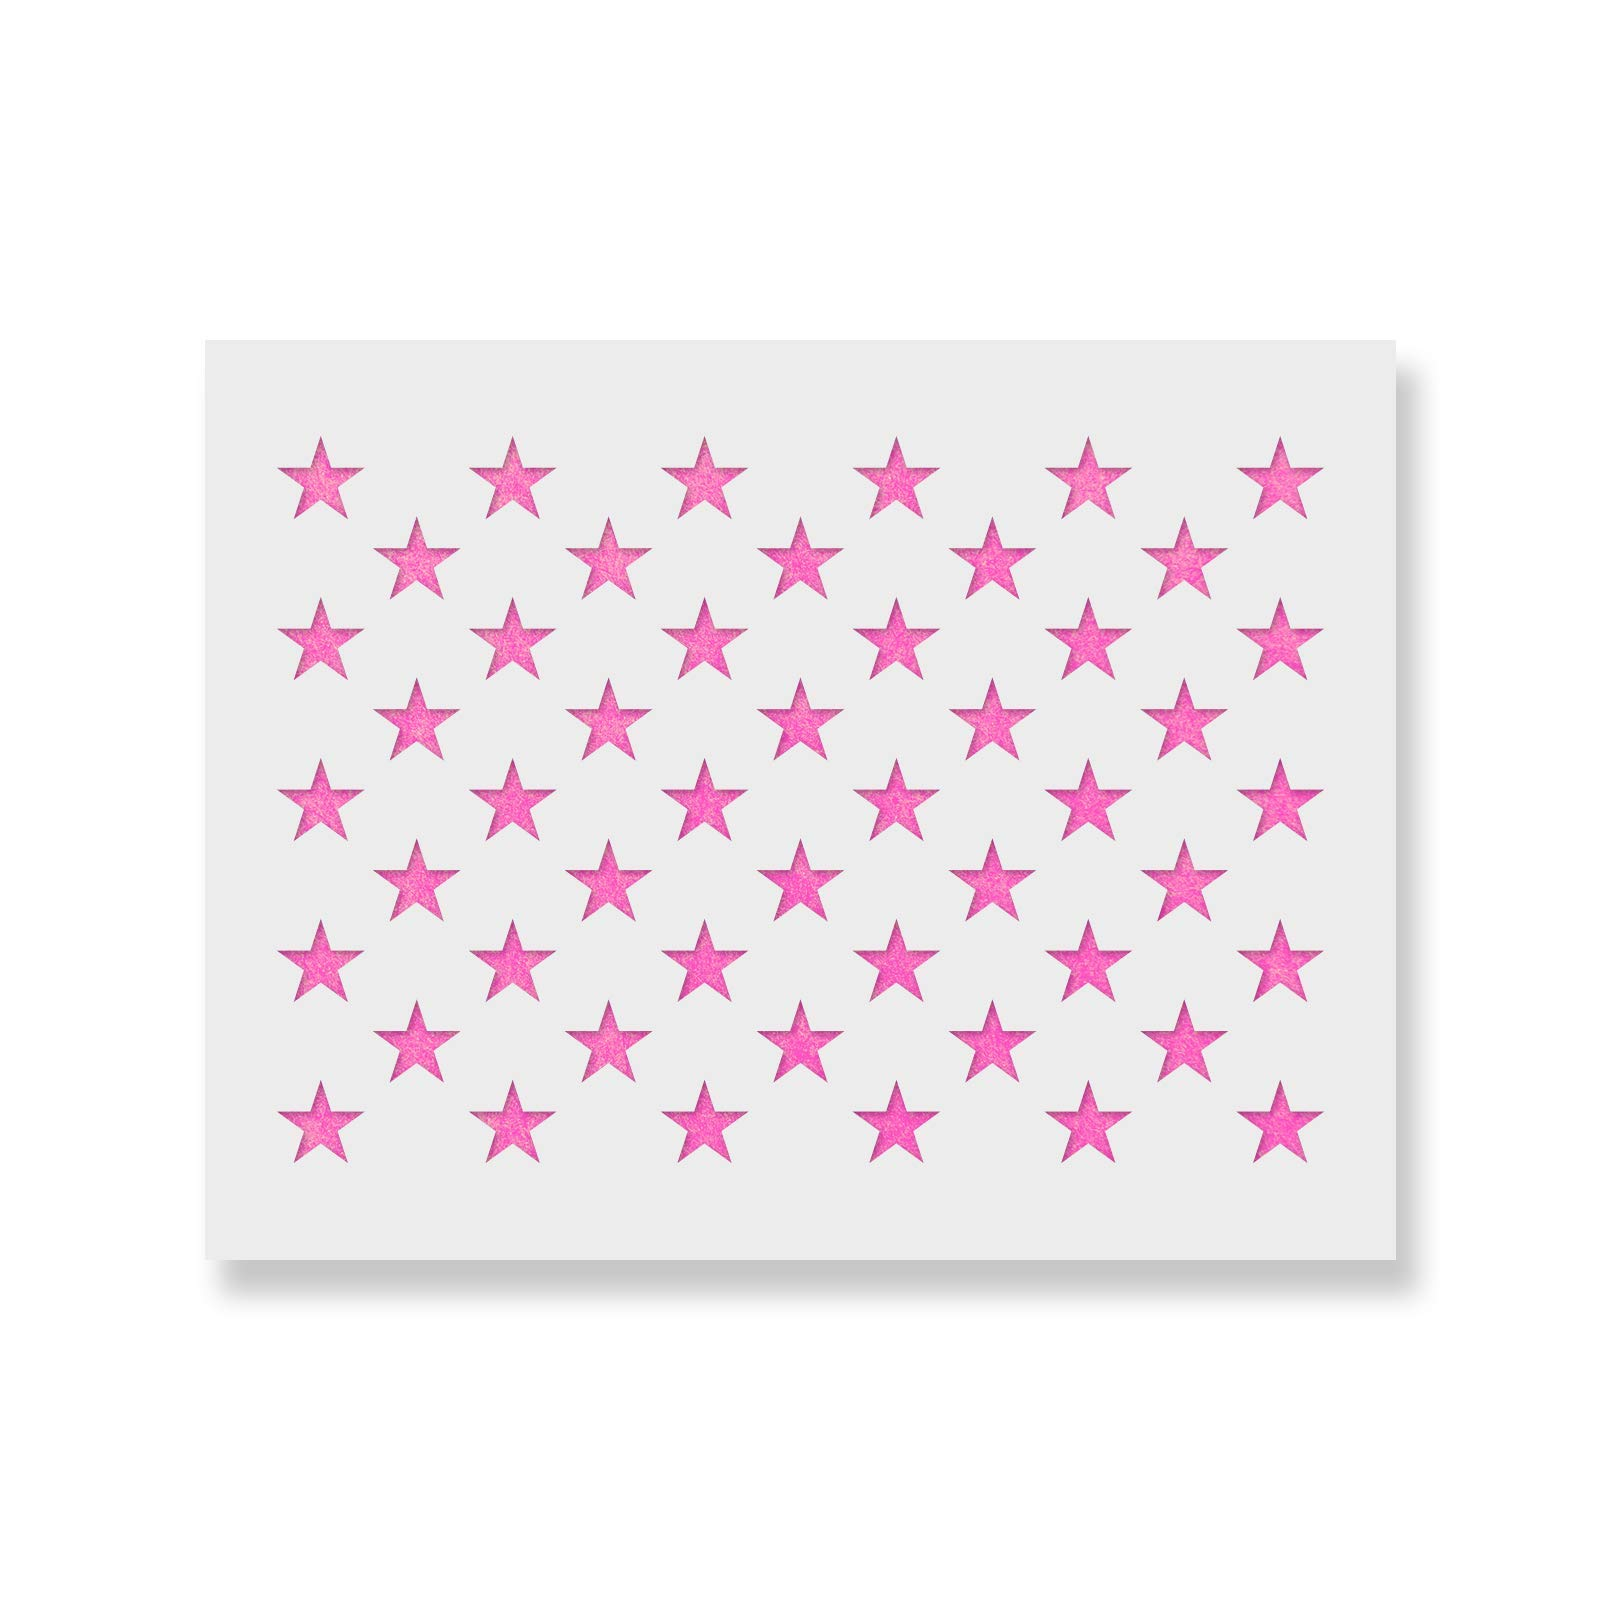 50 Stars Stencil Template - Reusable Stencil of American Flag 50 Stars in Official US Proportions (Actual dimensions 15.7'' width x 10.9'' height) by Stencil Revolution